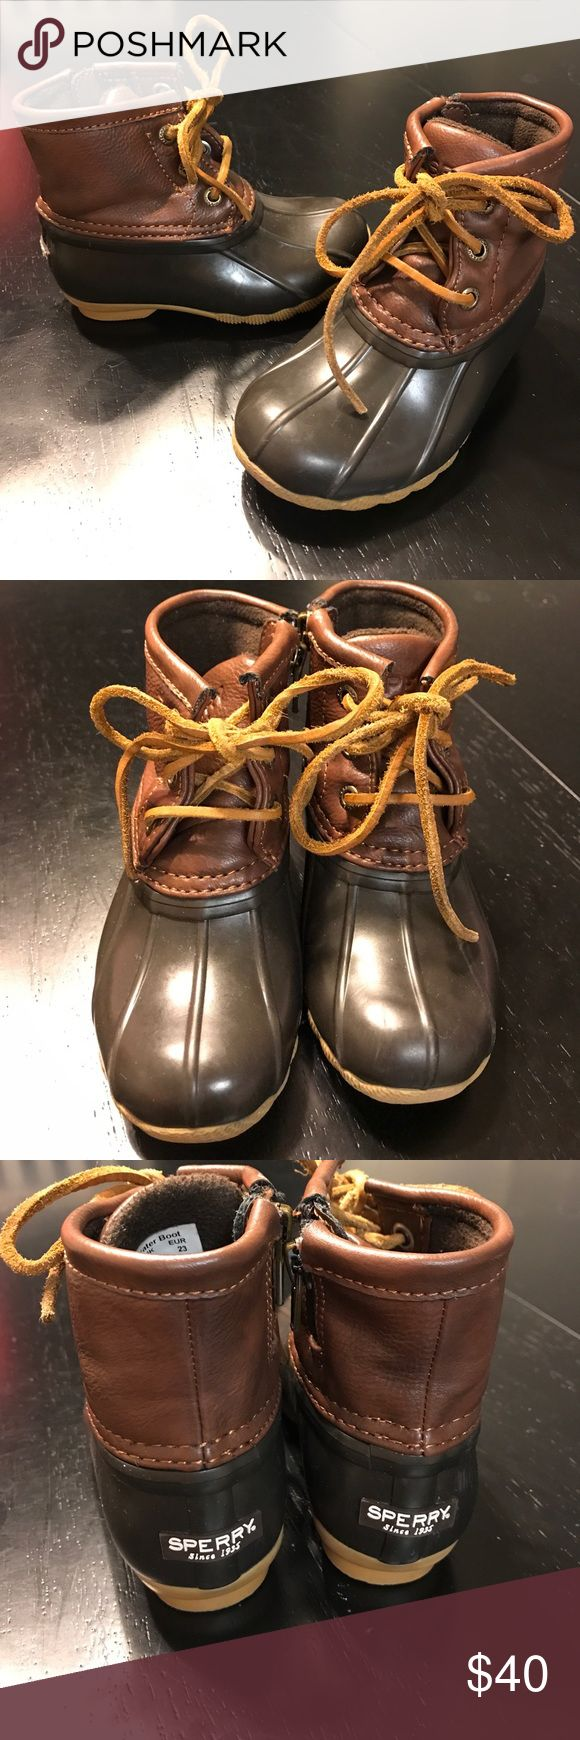 Toddler sperry saltwater duck boots ❤️ Sperry saltwater boot , in excellent condition size 7m Sperry Shoes Rain & Snow Boots